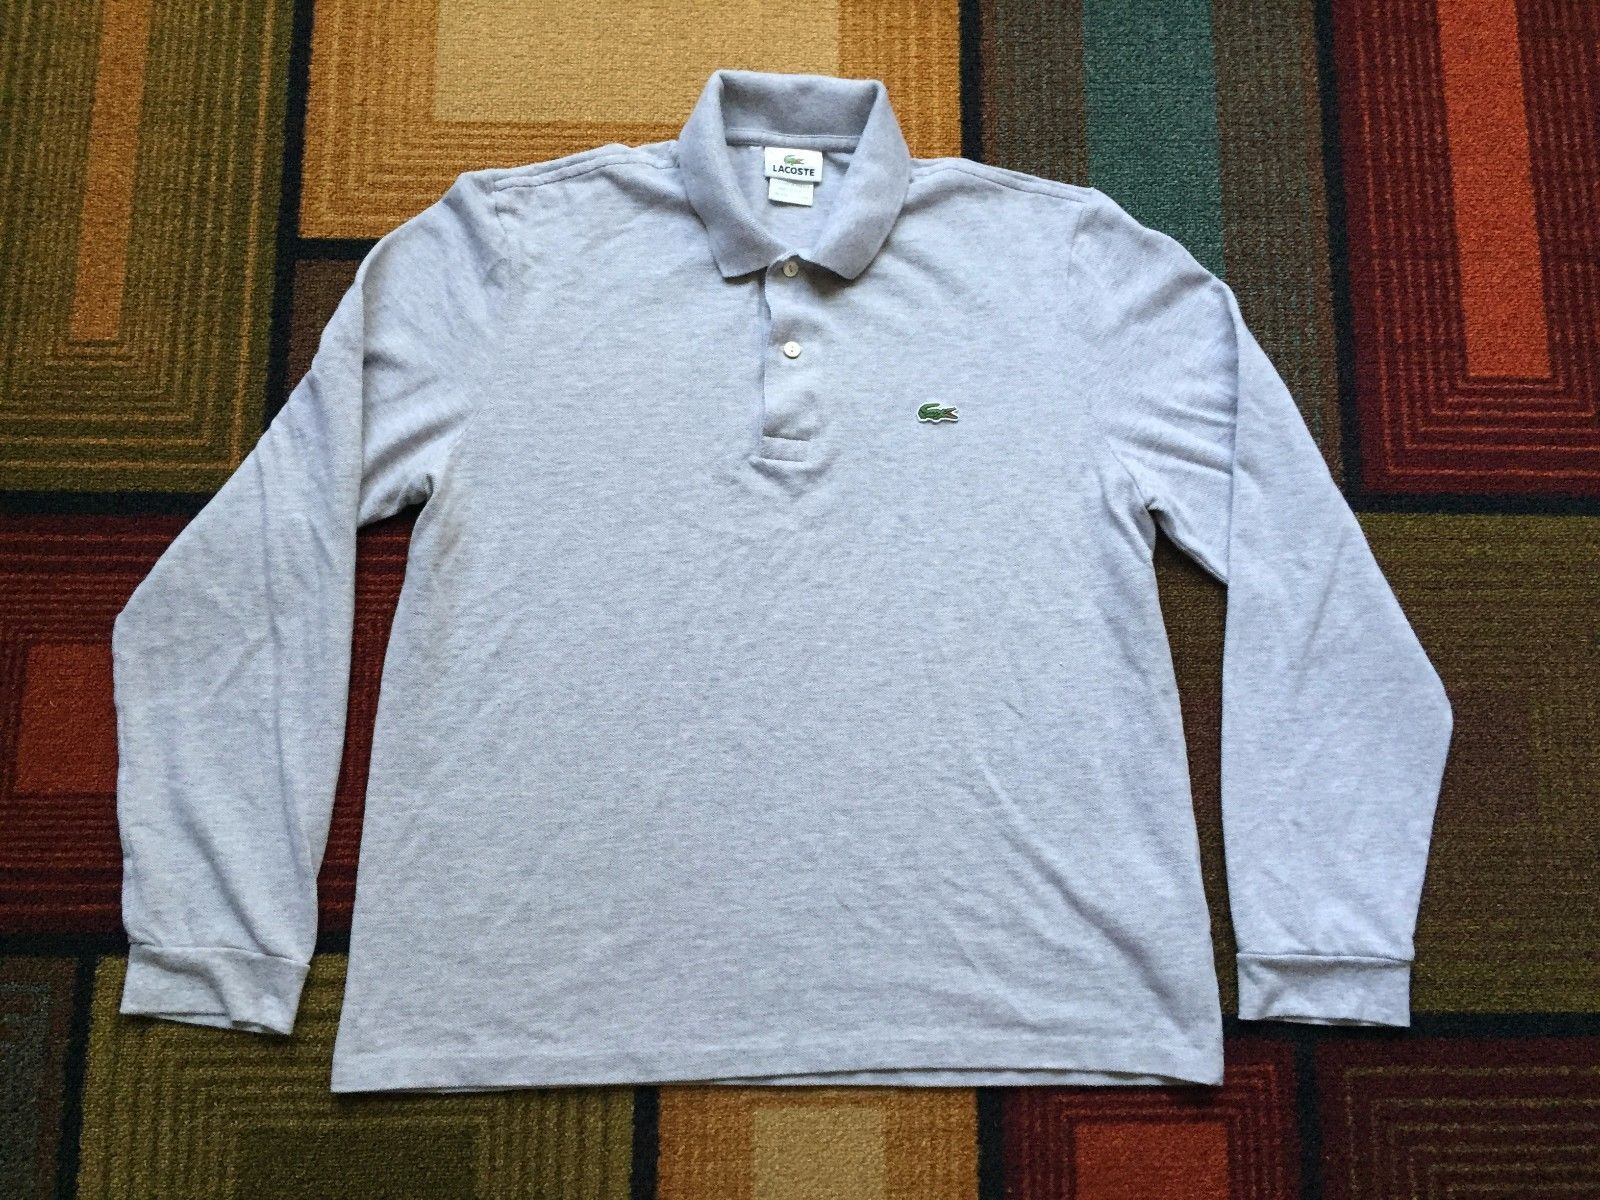 Mens lacoste polo shirt long sleeve gator logo sz 5 medium gray mens lacoste polo shirt long sleeve gator logo sz 5 medium gray pique croc sciox Images